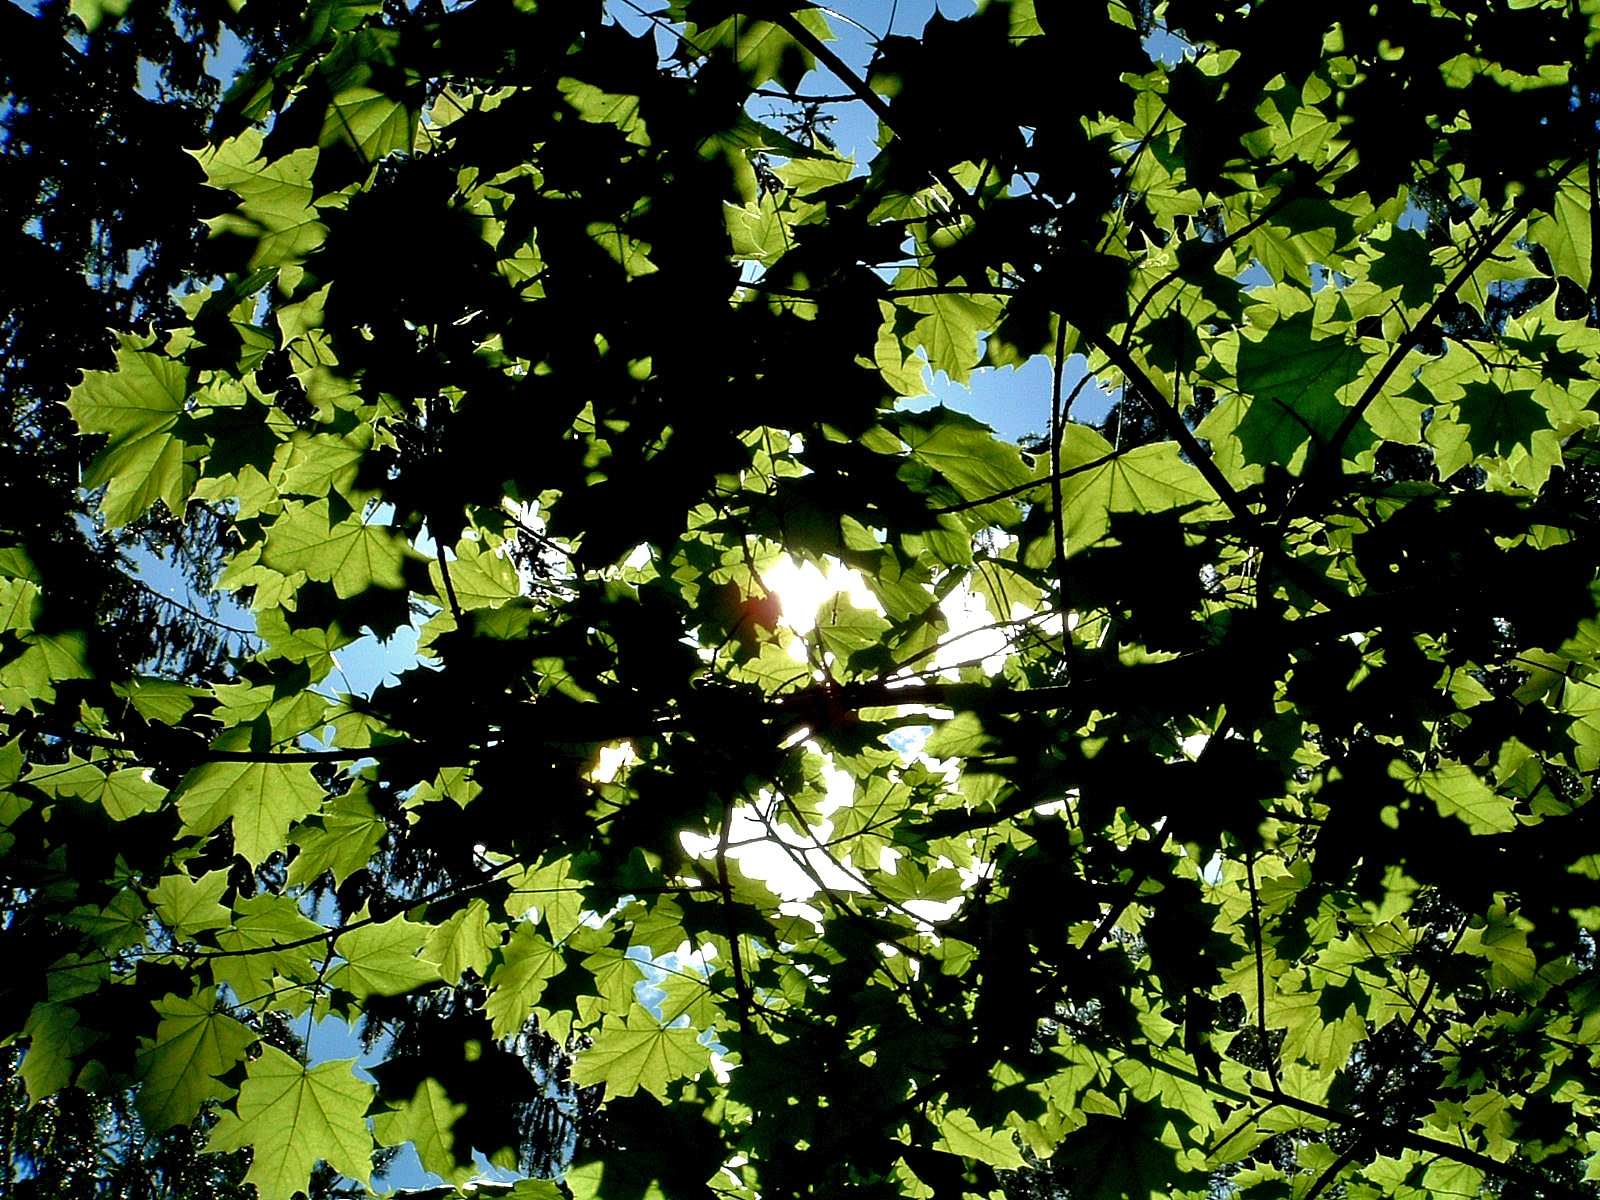 Sun through foliage  by Anders Wettergren